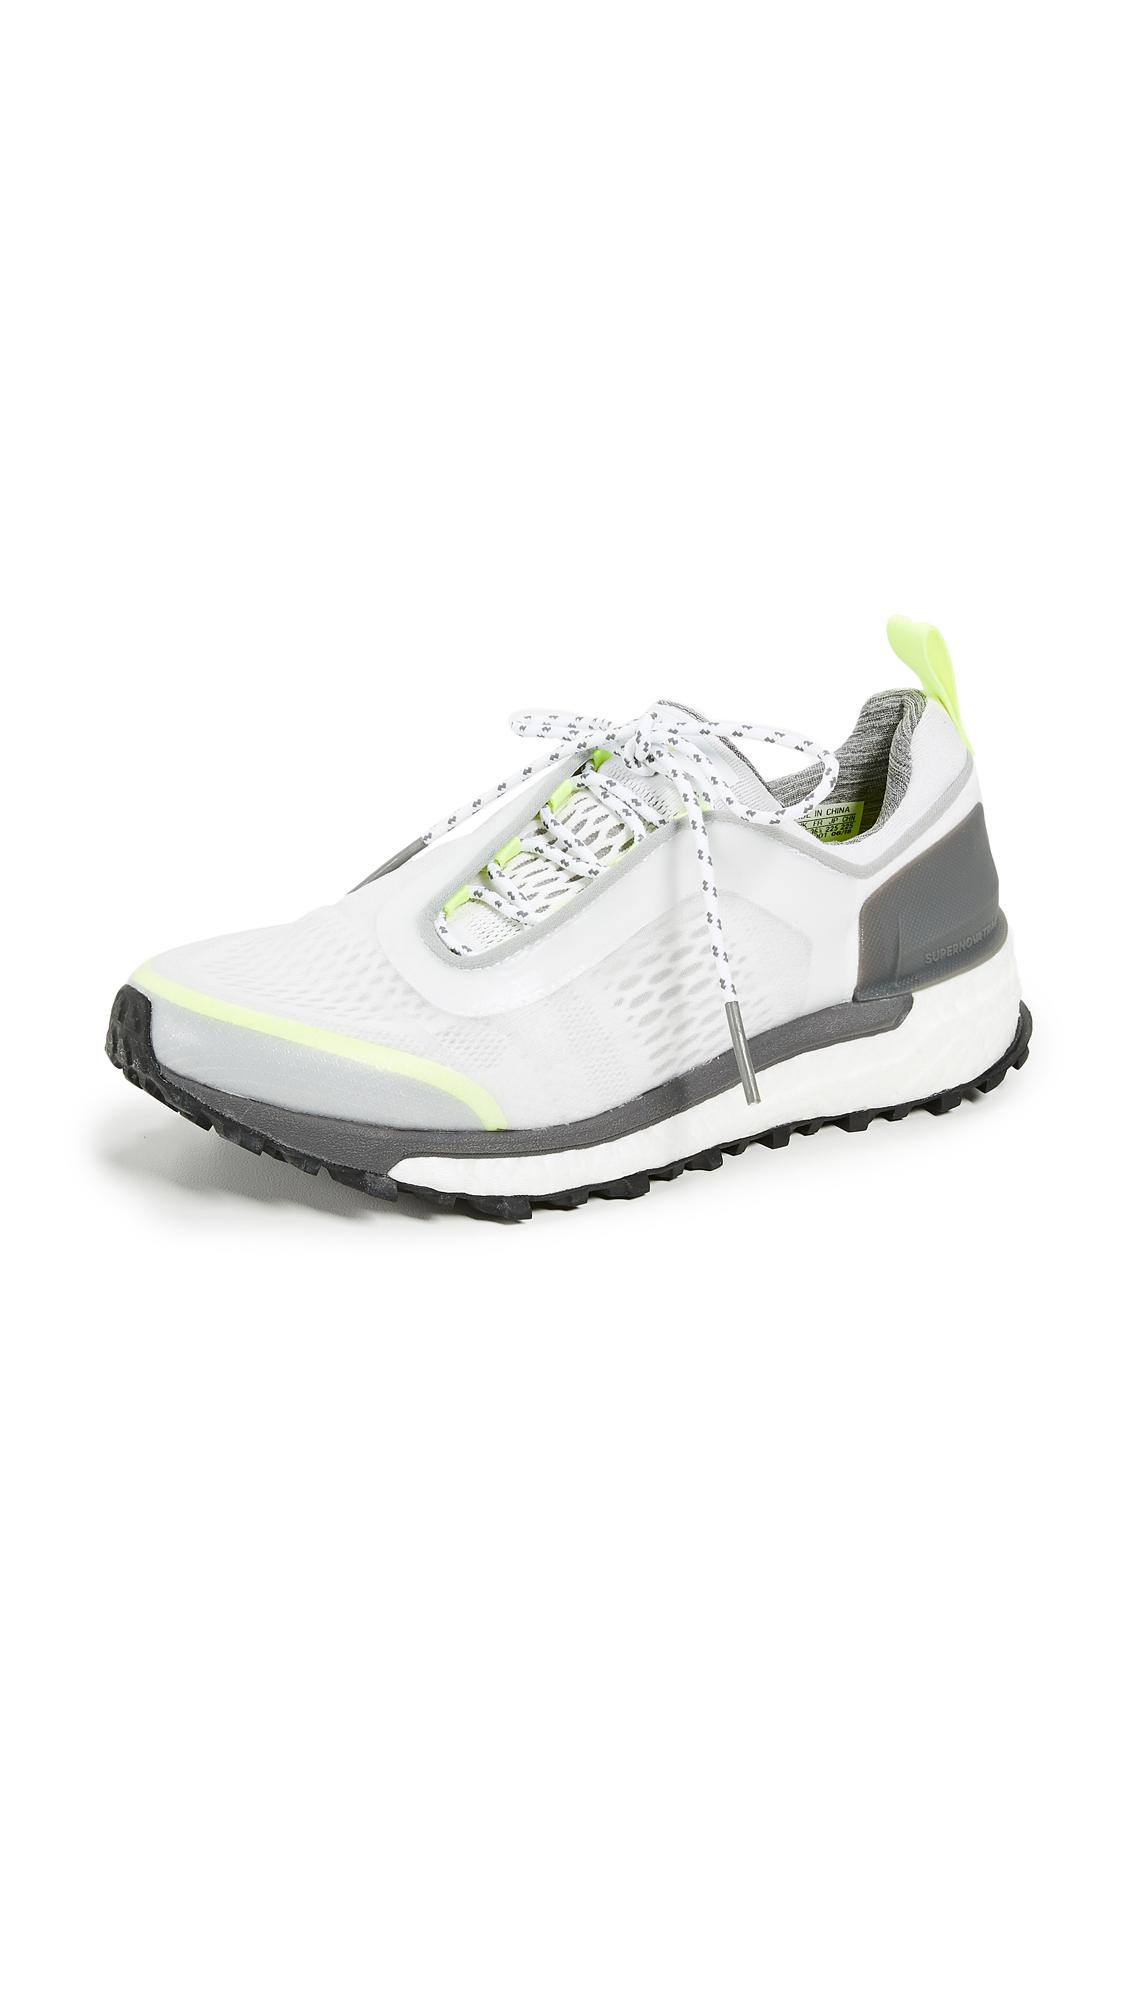 18d9e36db adidas By Stella McCartney Supernova Trail Sneakers in White - Lyst